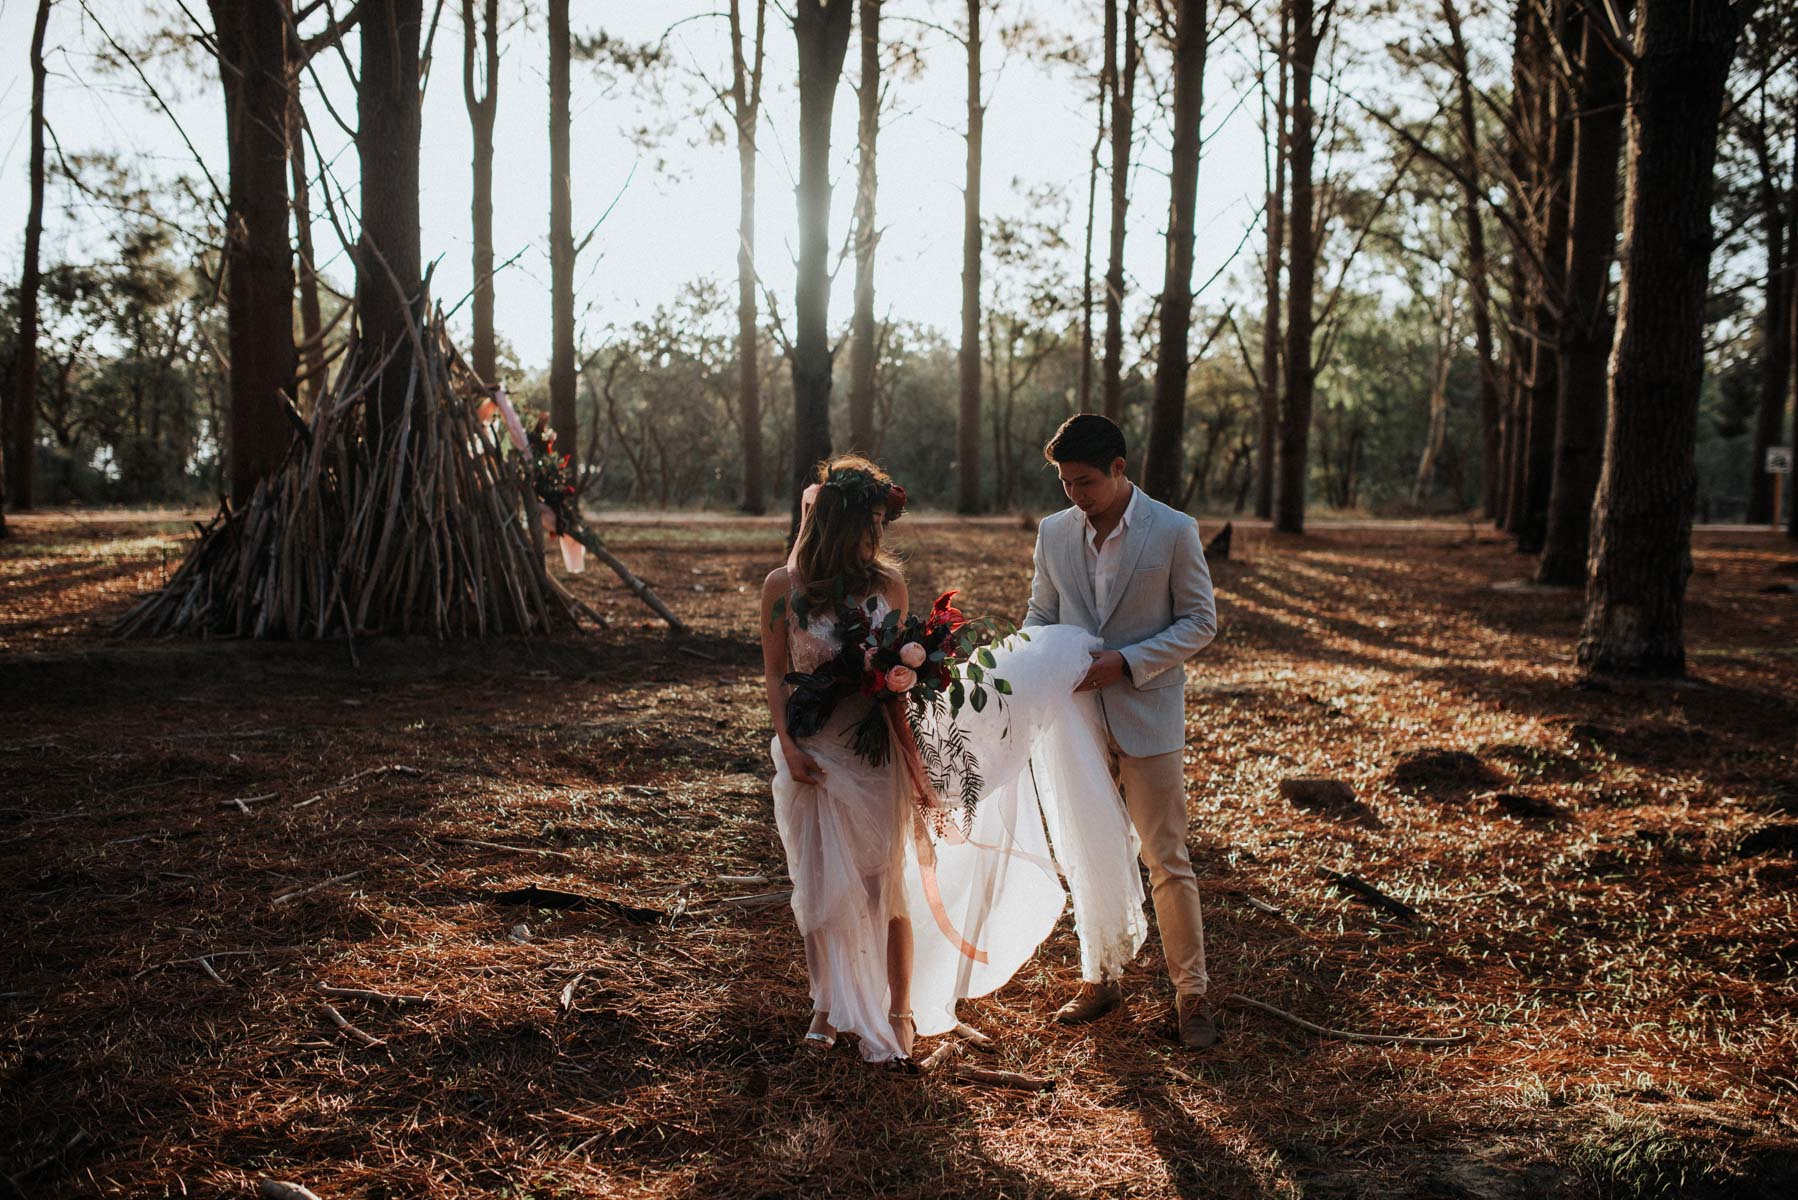 james-julene-forest-elopement-perth-24.JPG